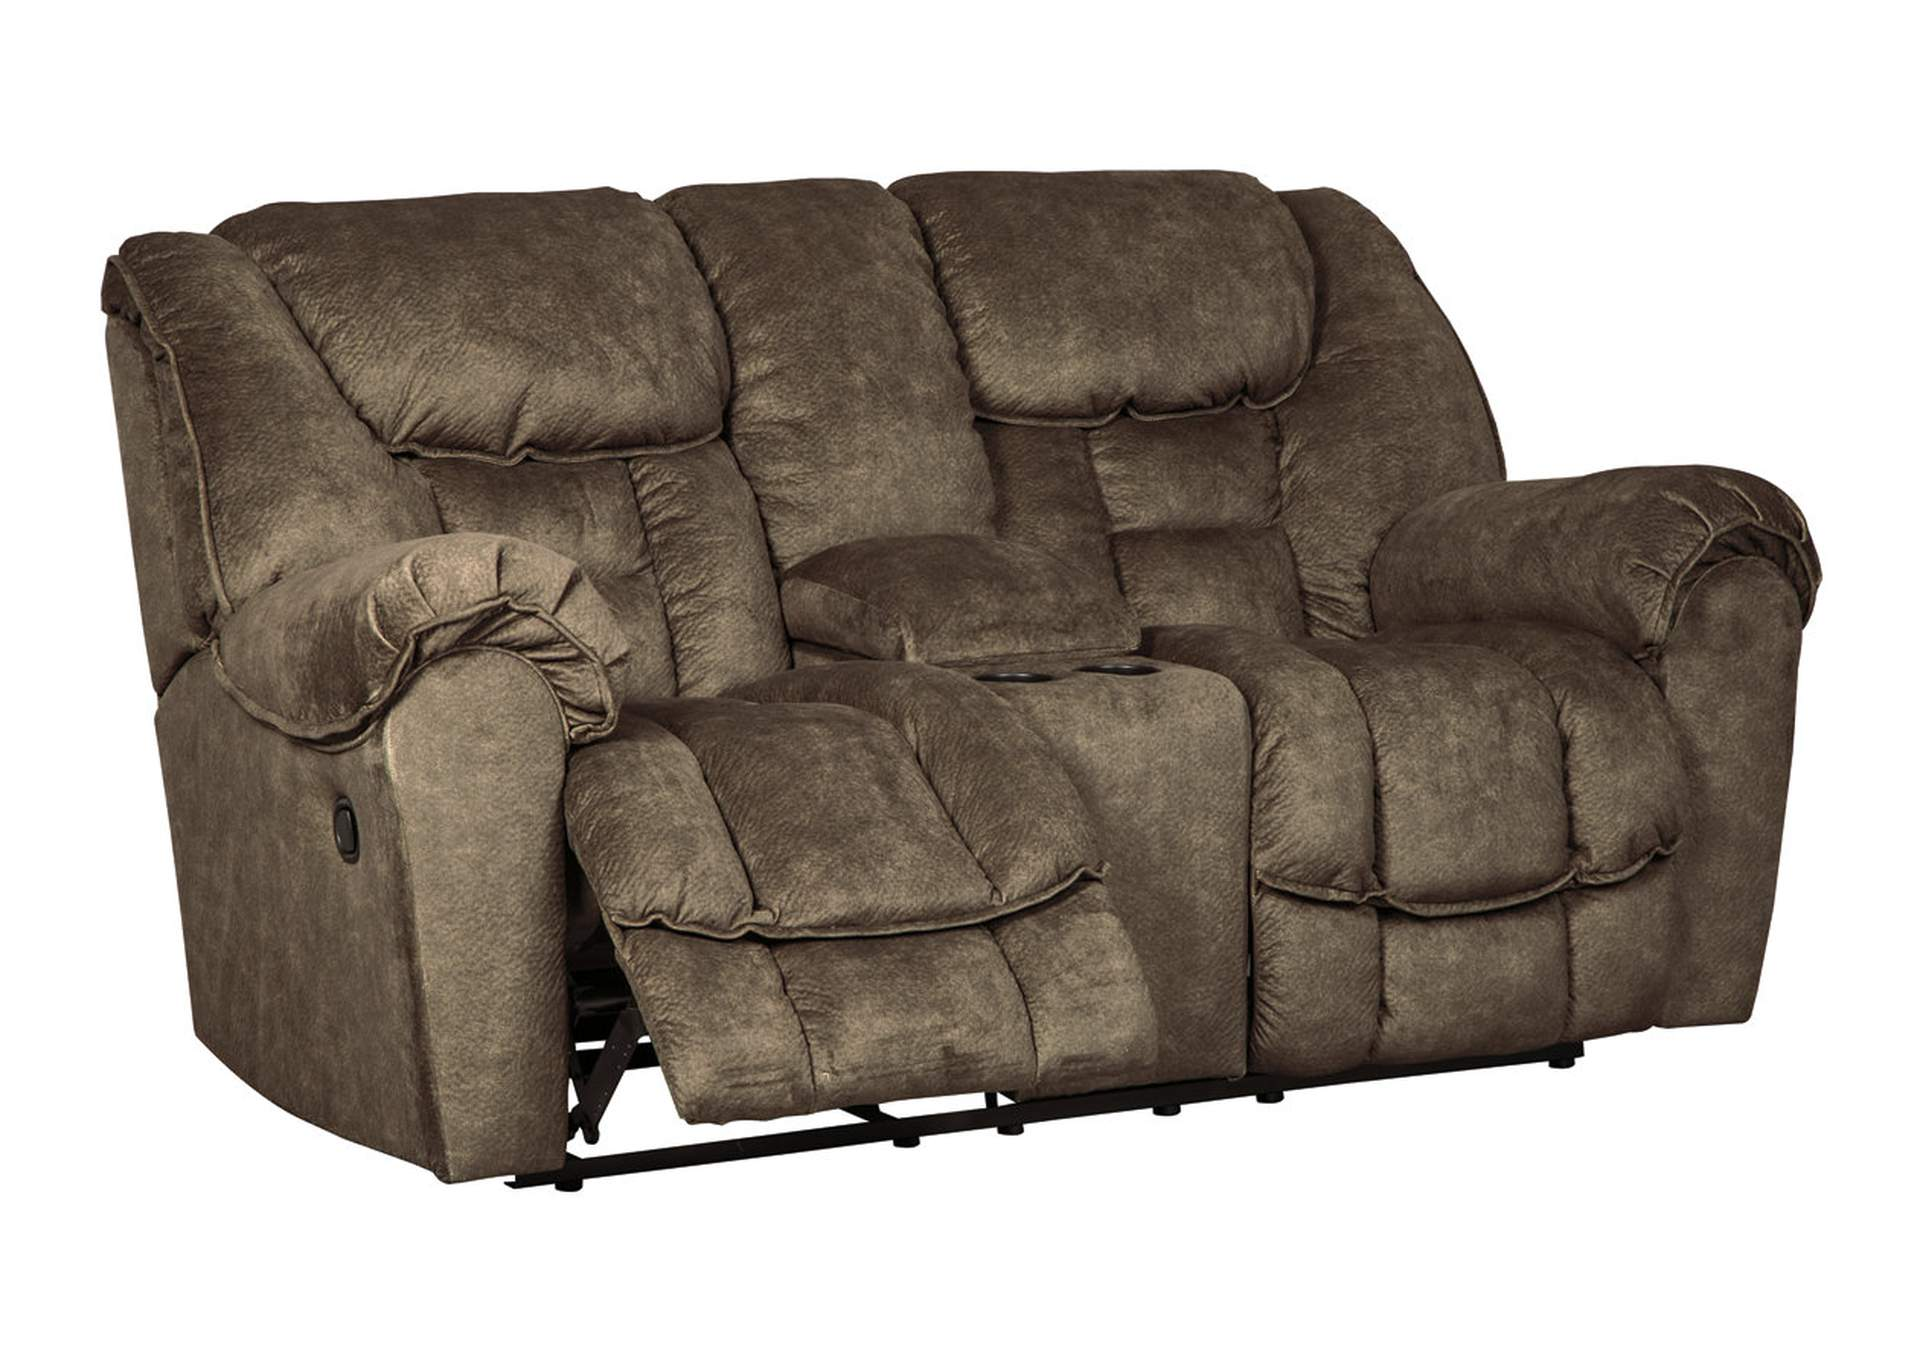 Capehorn Earth Double Reclining Loveseat,Signature Design By Ashley